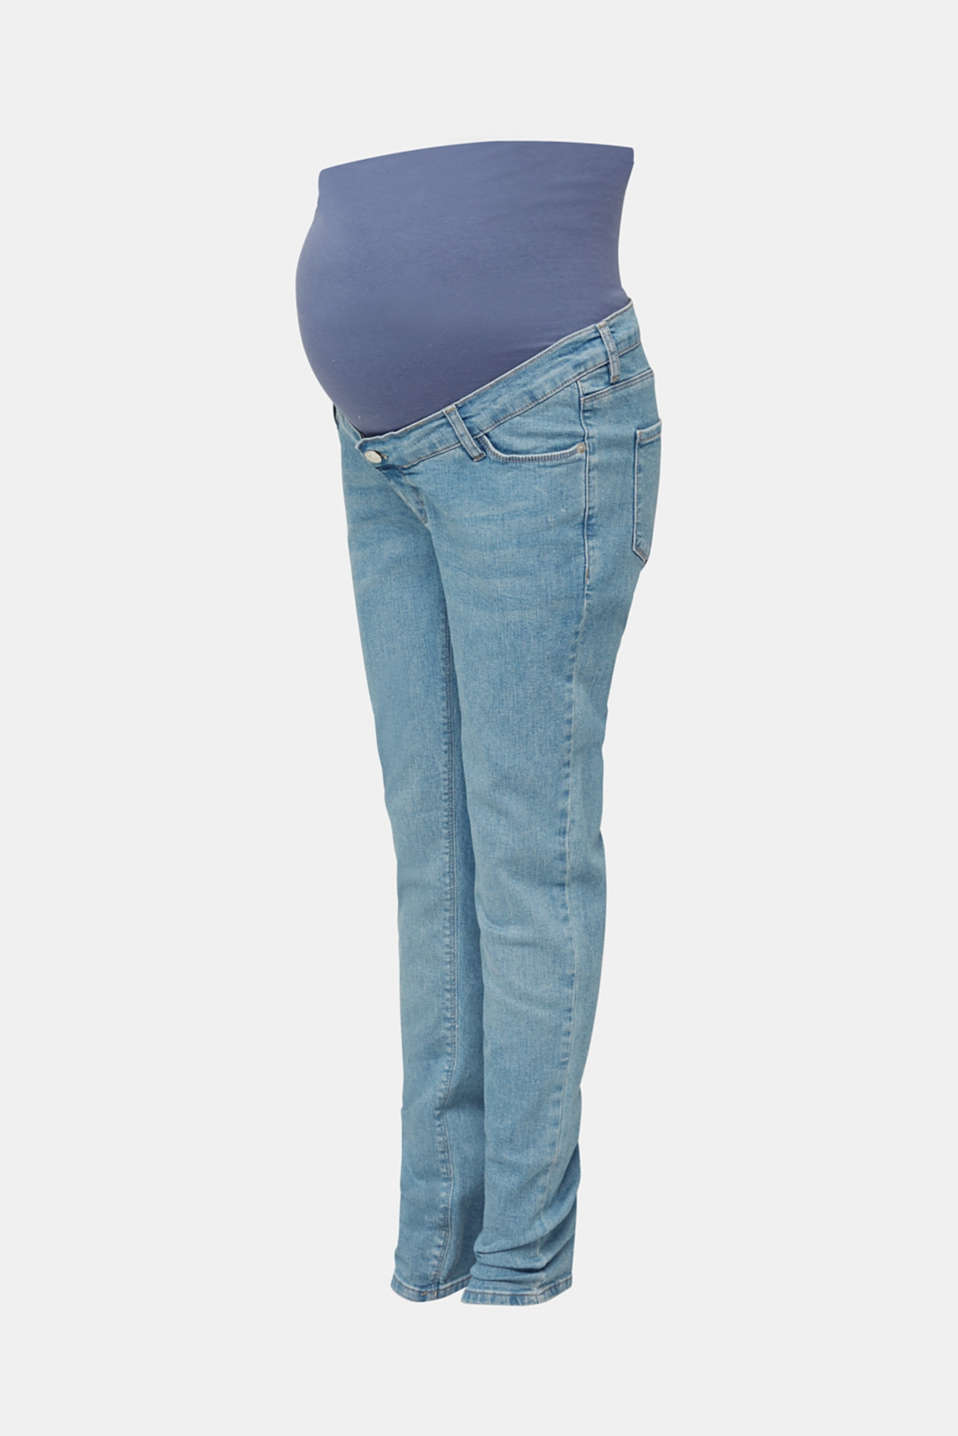 Basic jeans with an over-bump waistband, LCBLUE GREY WASH, detail image number 4